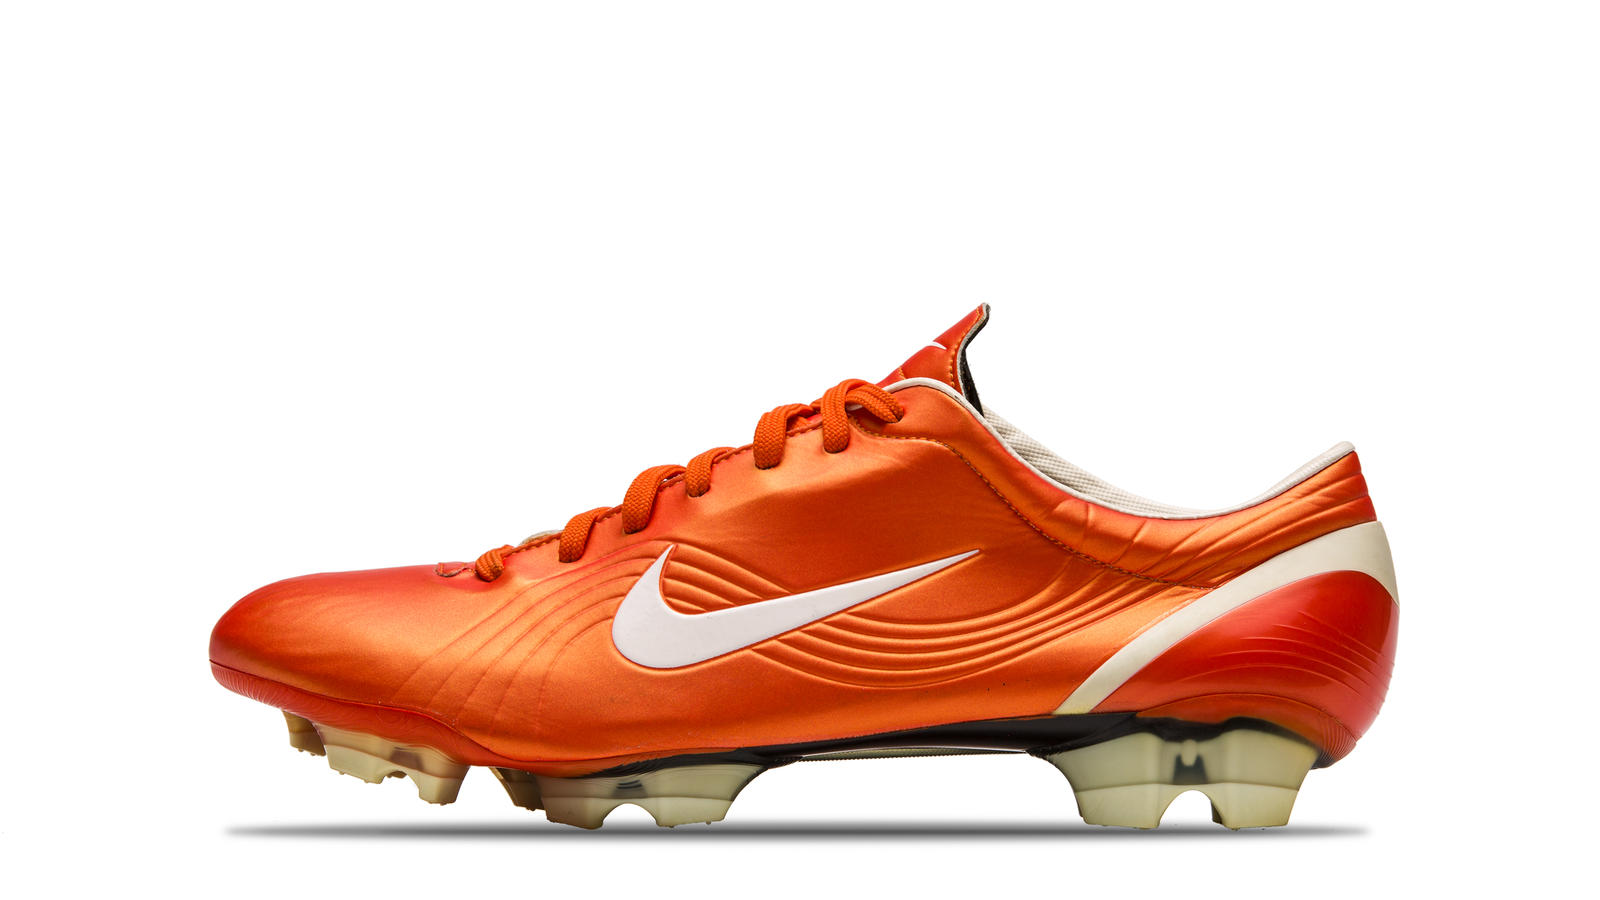 ccf64dd76efbbb Nike boots worn during key moments of Cristiano Ronaldo s career  2003  Mercurial Vapor Orange